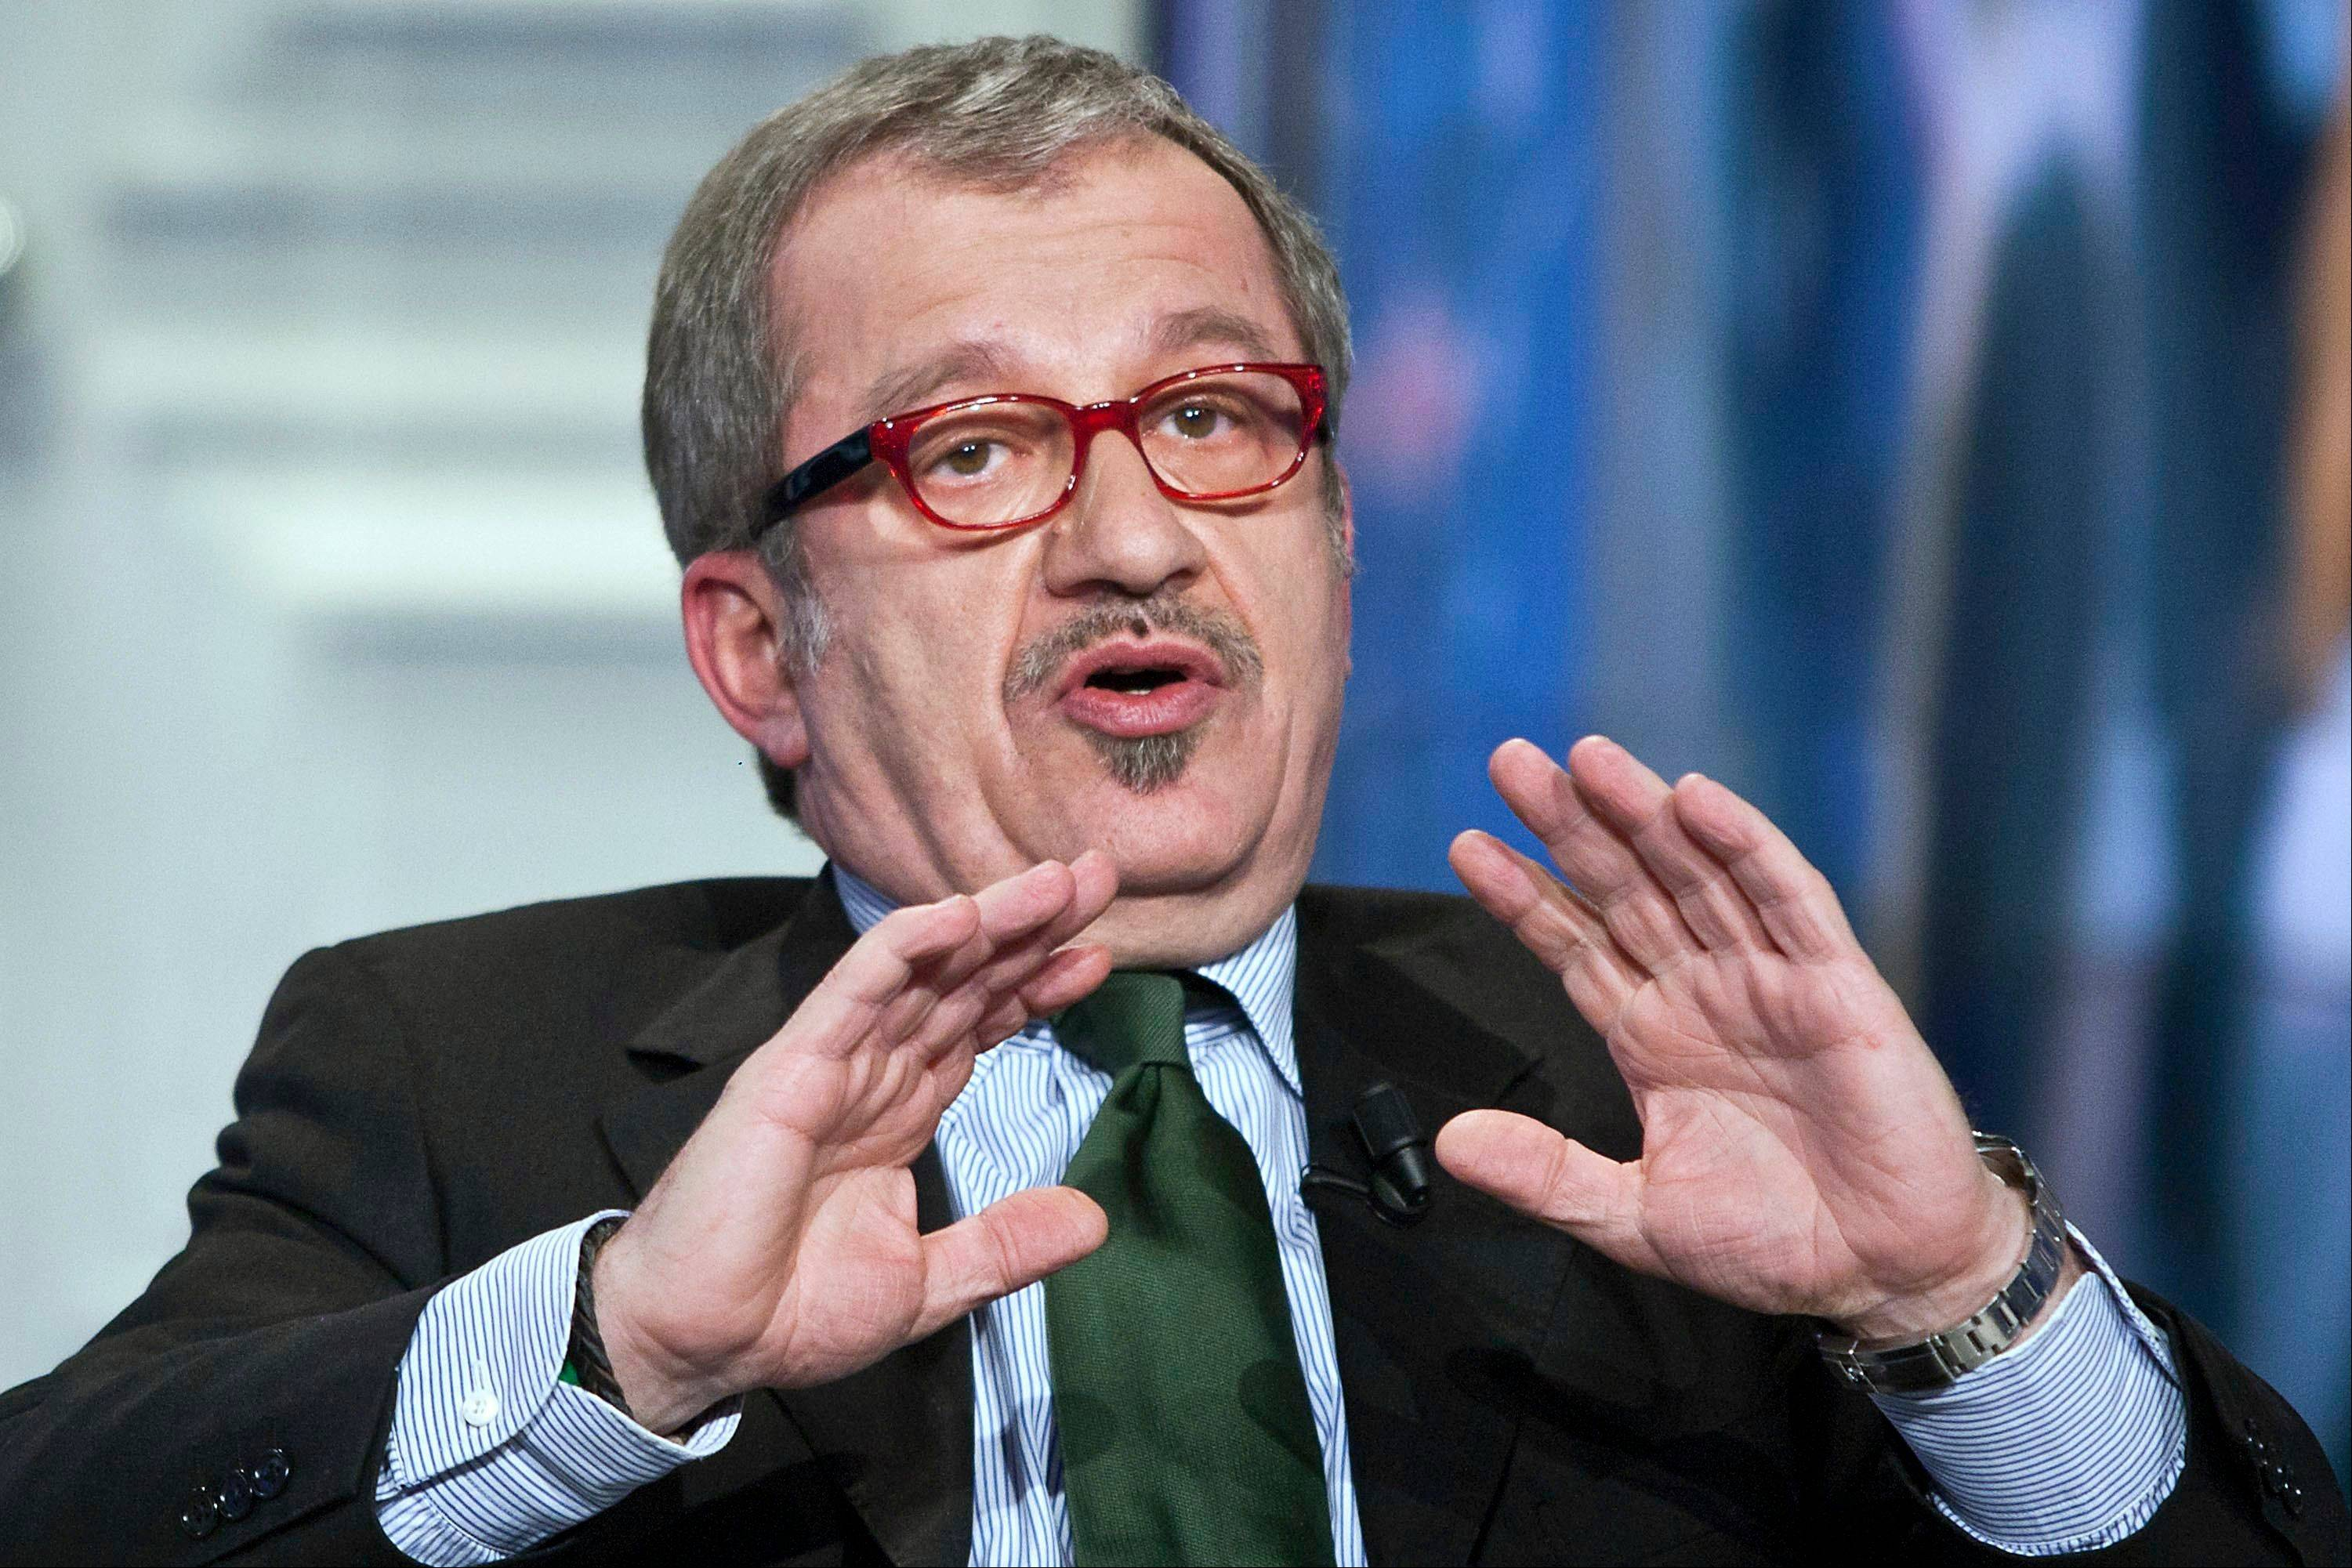 Northern League party leader Roberto Maroni attends a TV show in Rome.